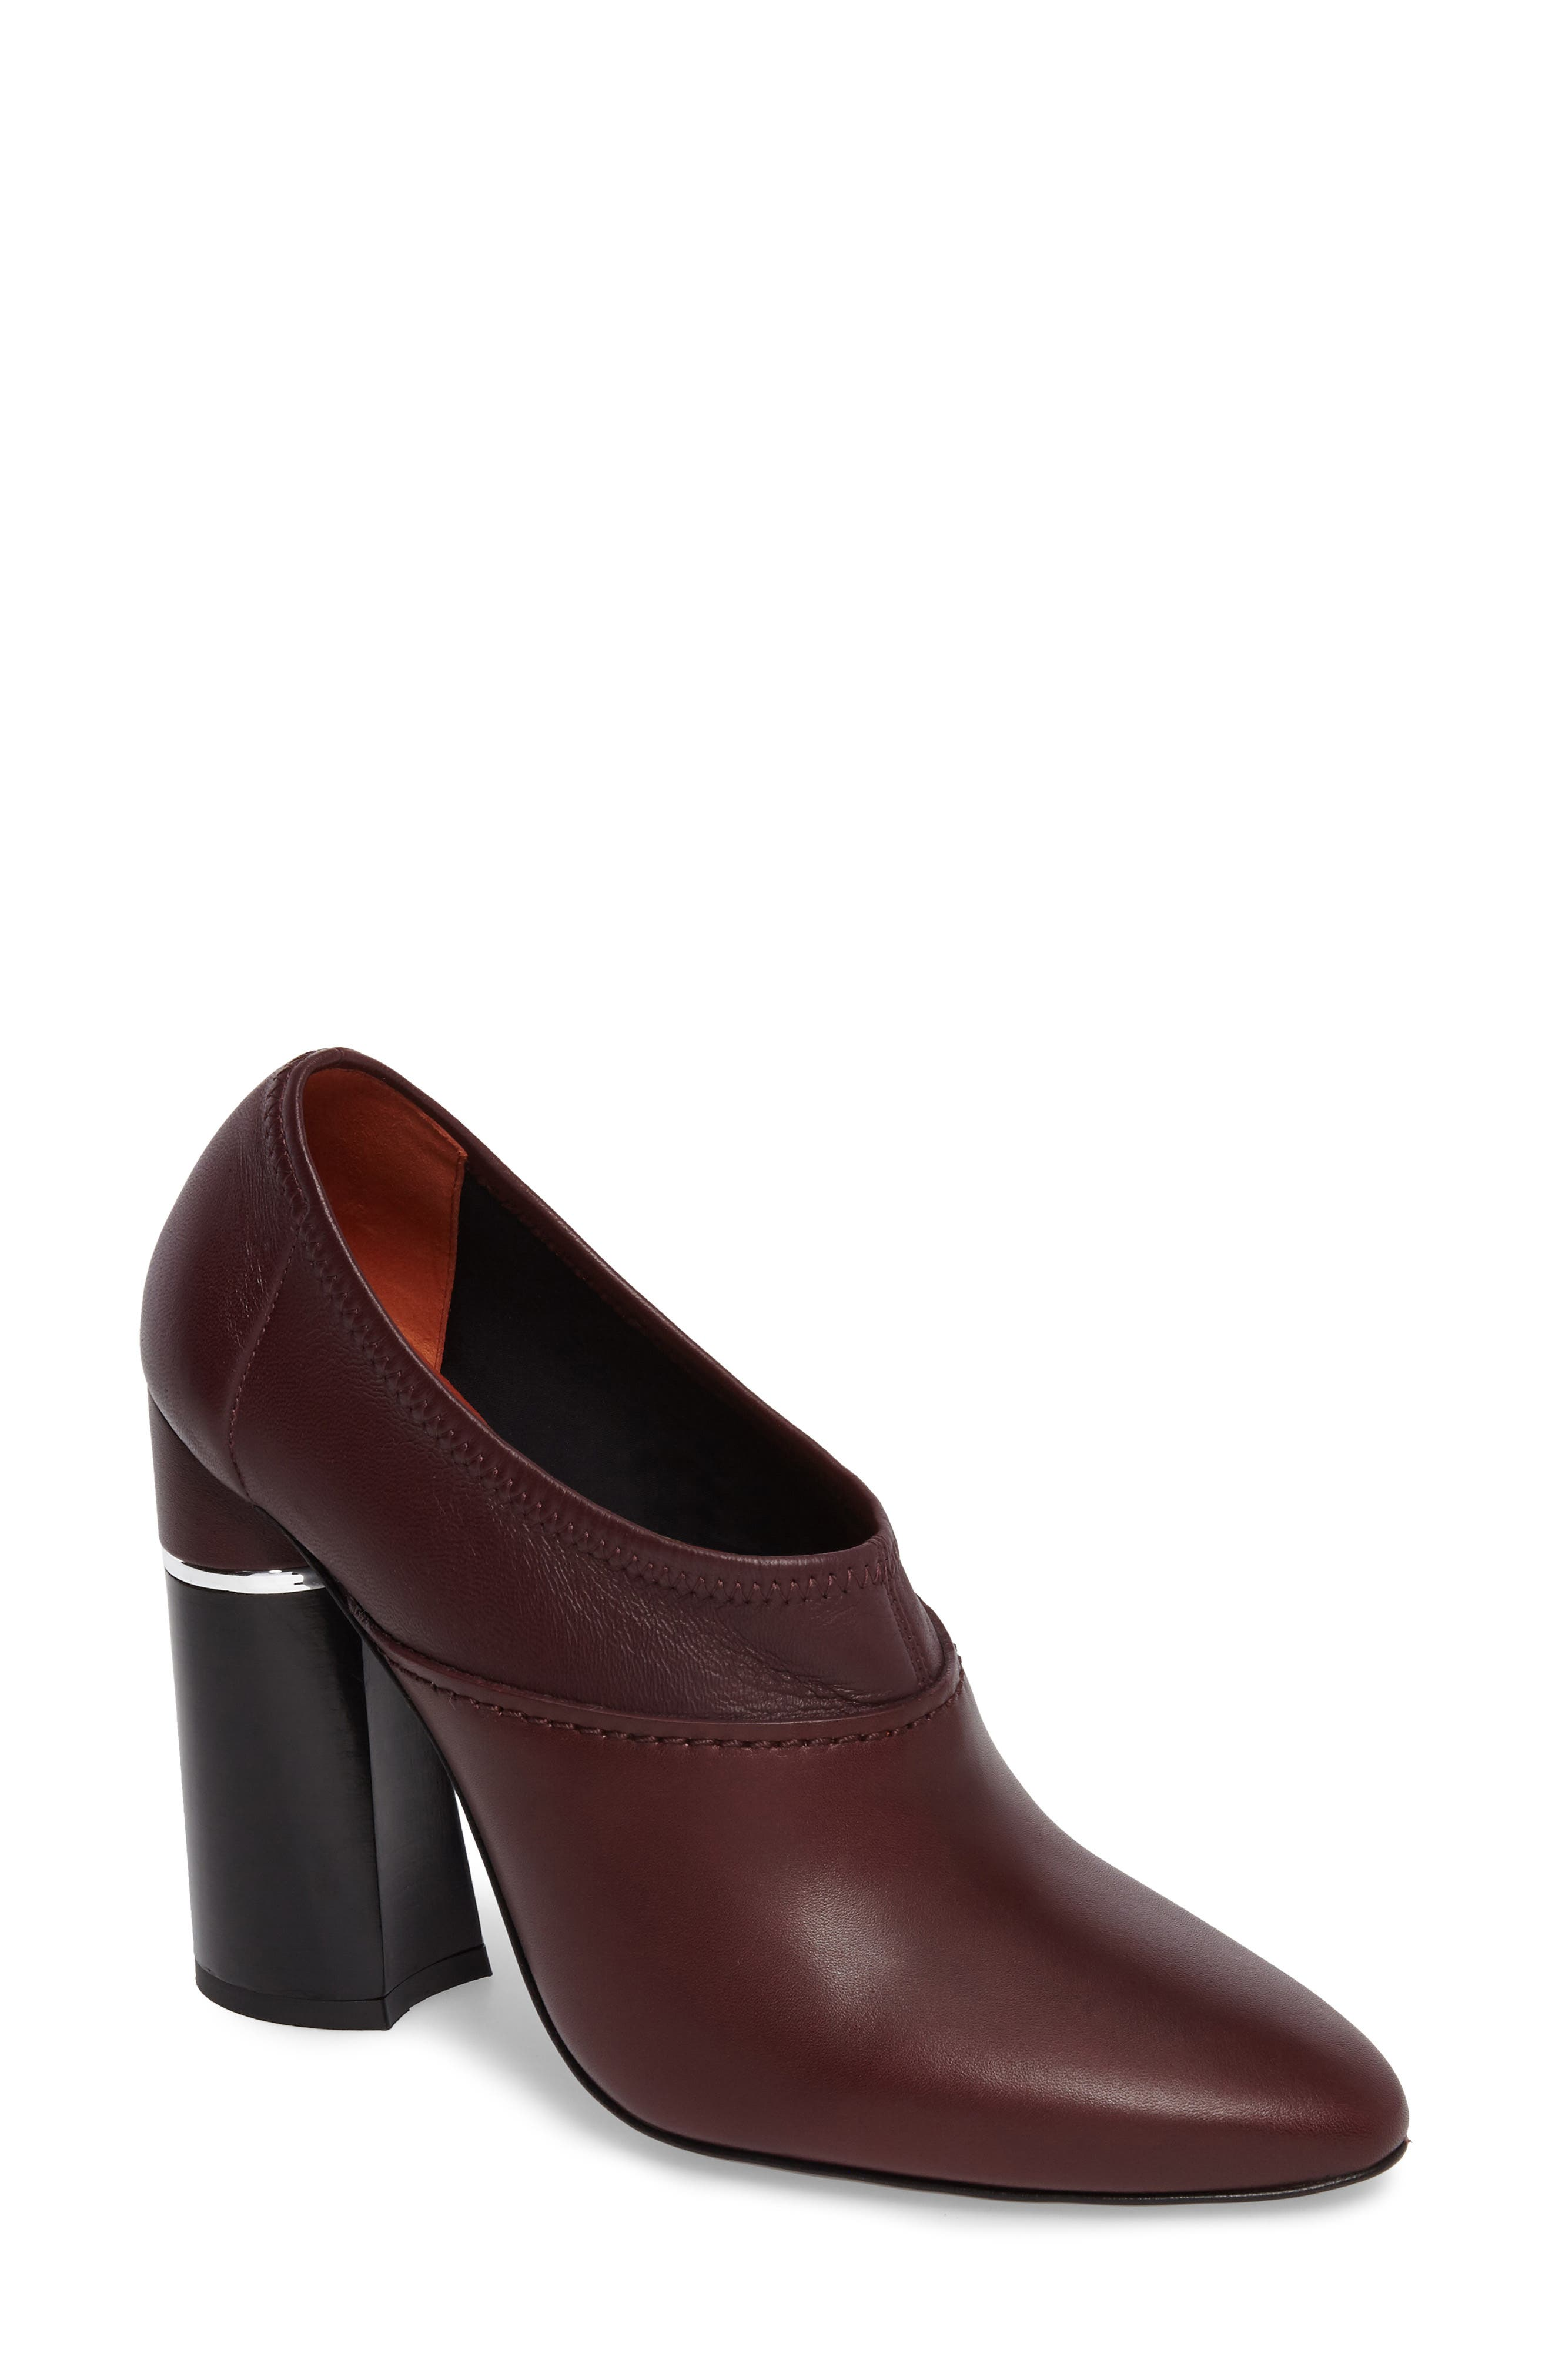 Alternate Image 1 Selected - 3.1 Phillip Lim Kyoto Bootie (Women)